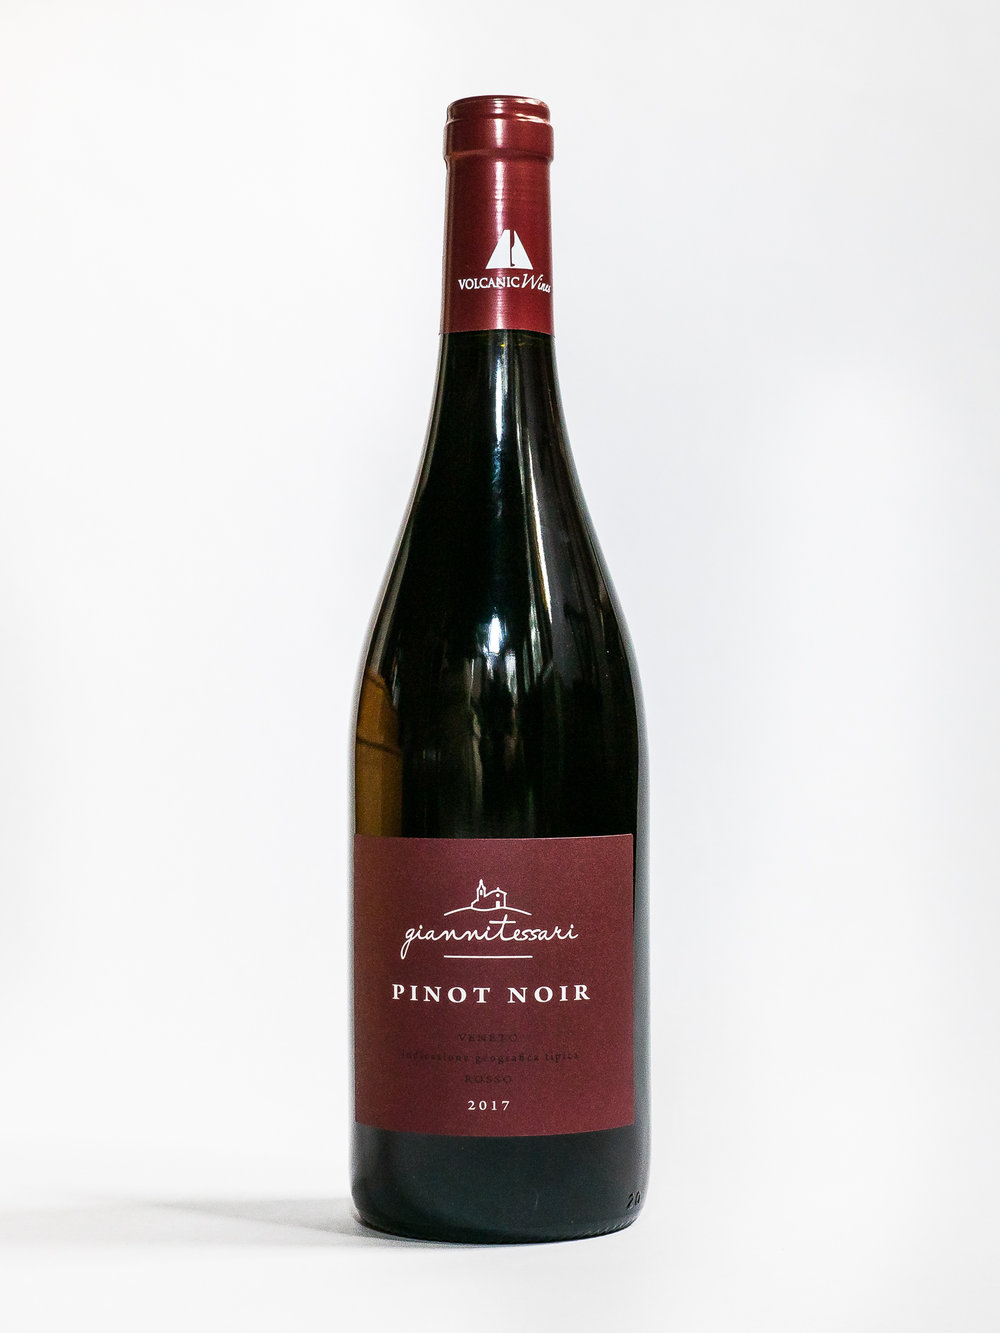 Pinot Noir 2017    Producer :  Giannitessari    Region:  Roncà, Veneto  Grapes:  Pinot Nero  Characteristics:  Cherry red color. Wild red fruit aromas. Medium structure, lightly tannicity and sapidity. Pairs well with white meat and grilled fish.